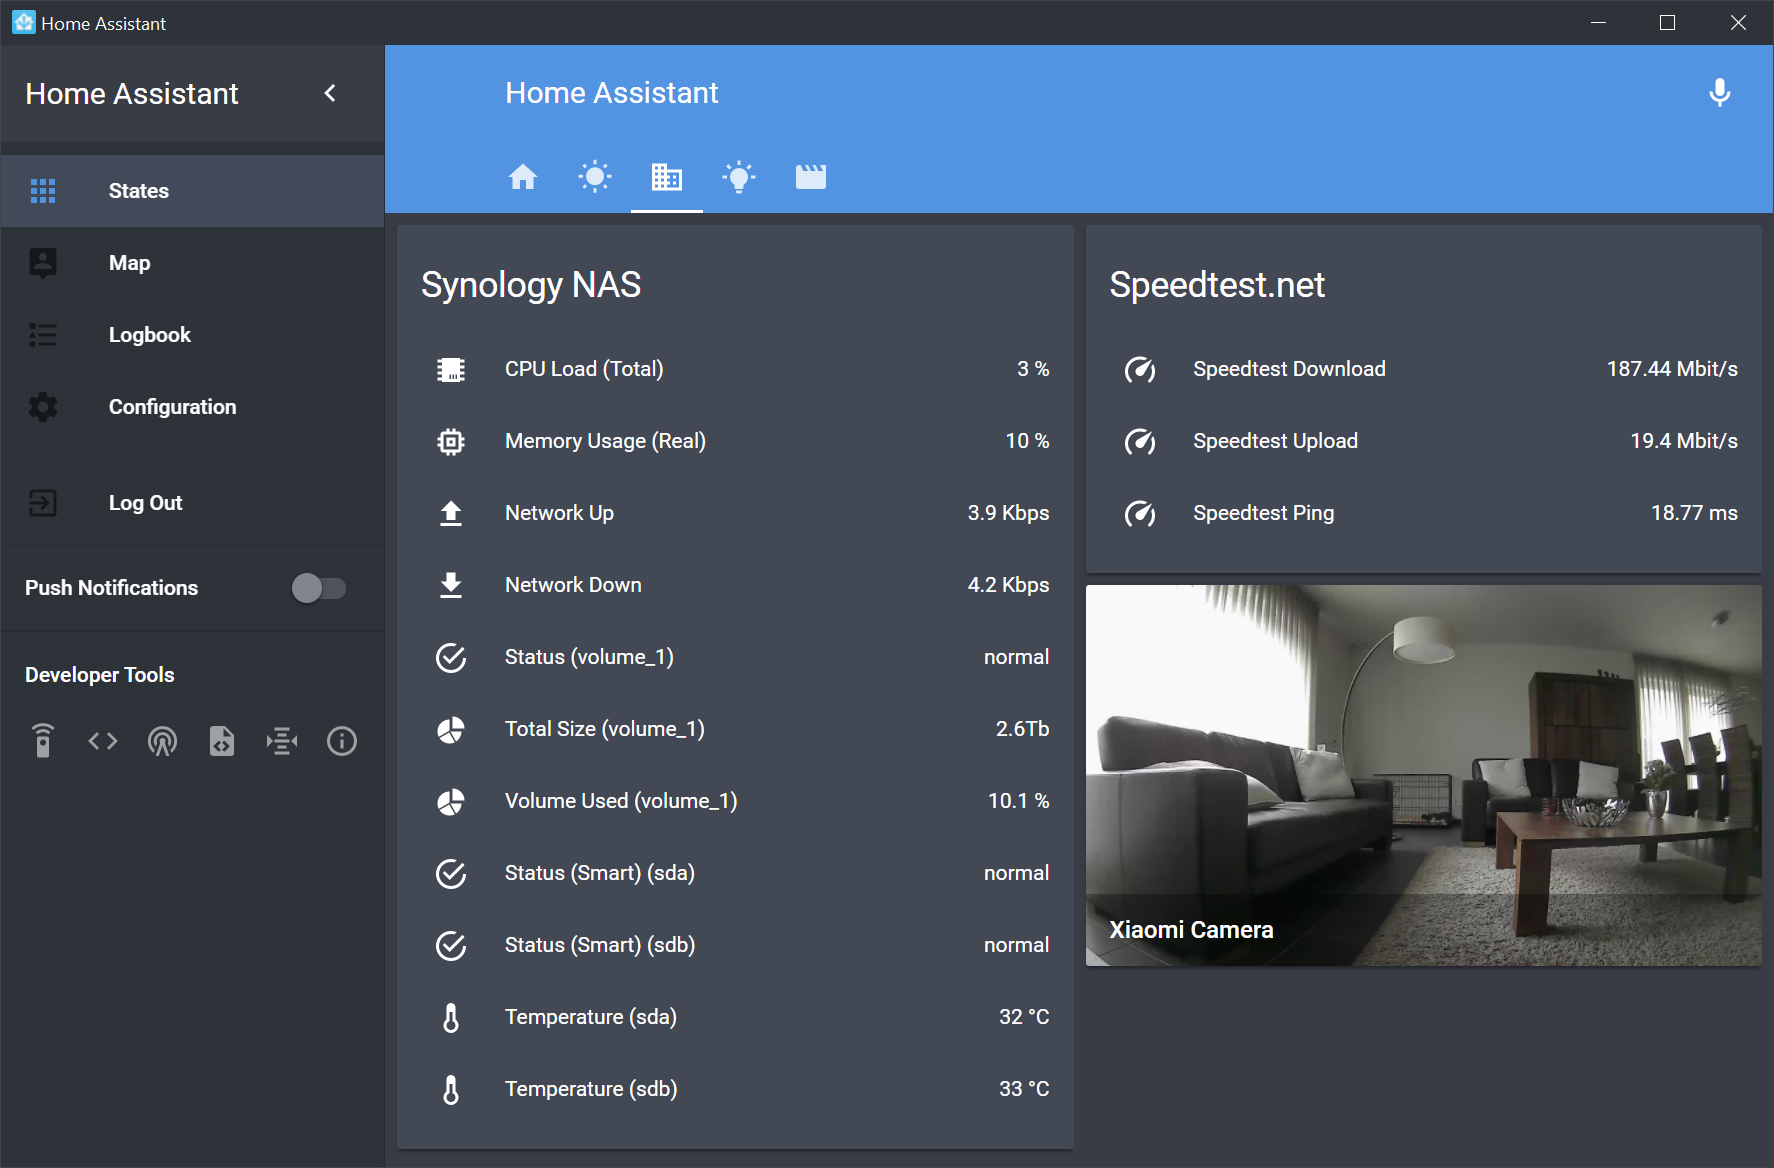 Midnight Theme - Themes - Home Assistant Community